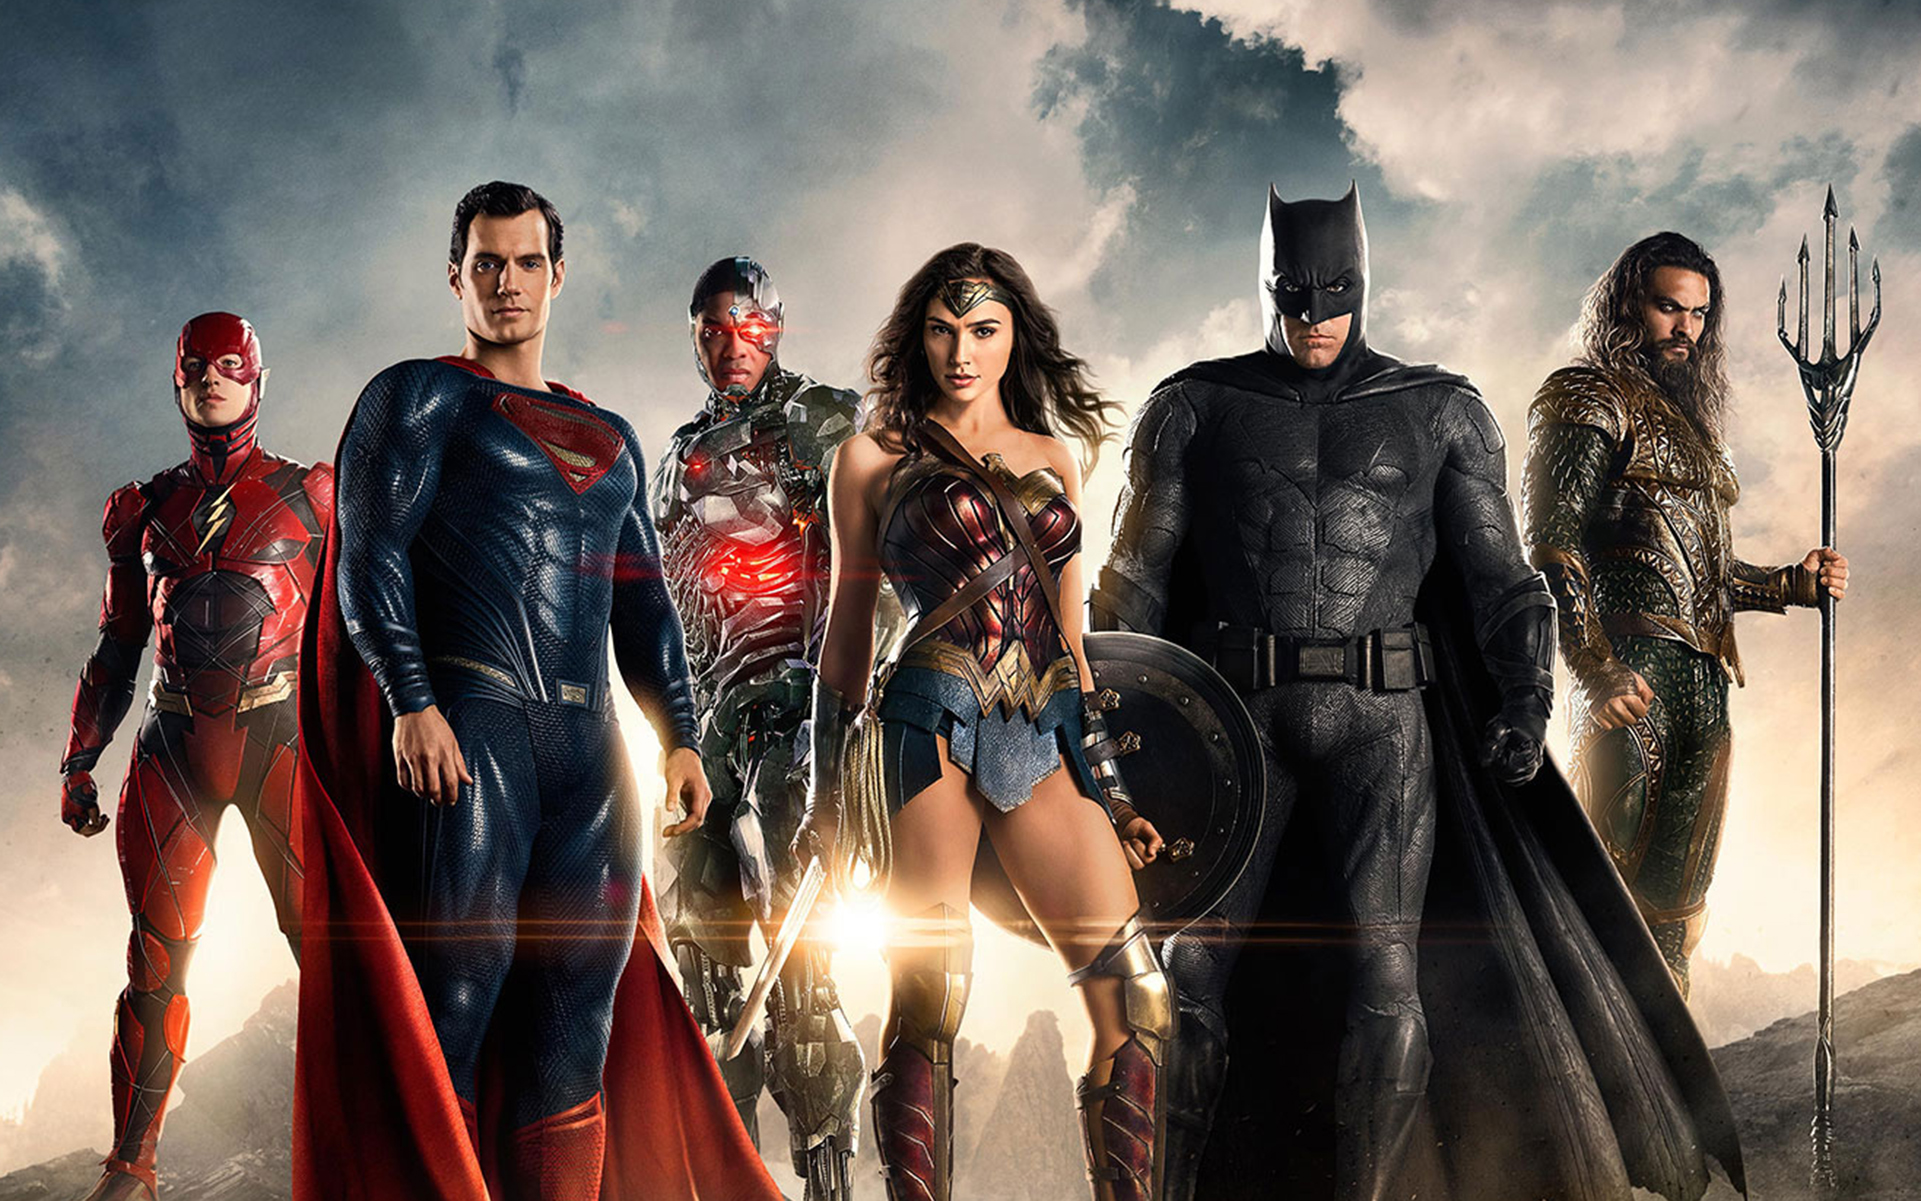 'Justice League': Is It Worth the High?